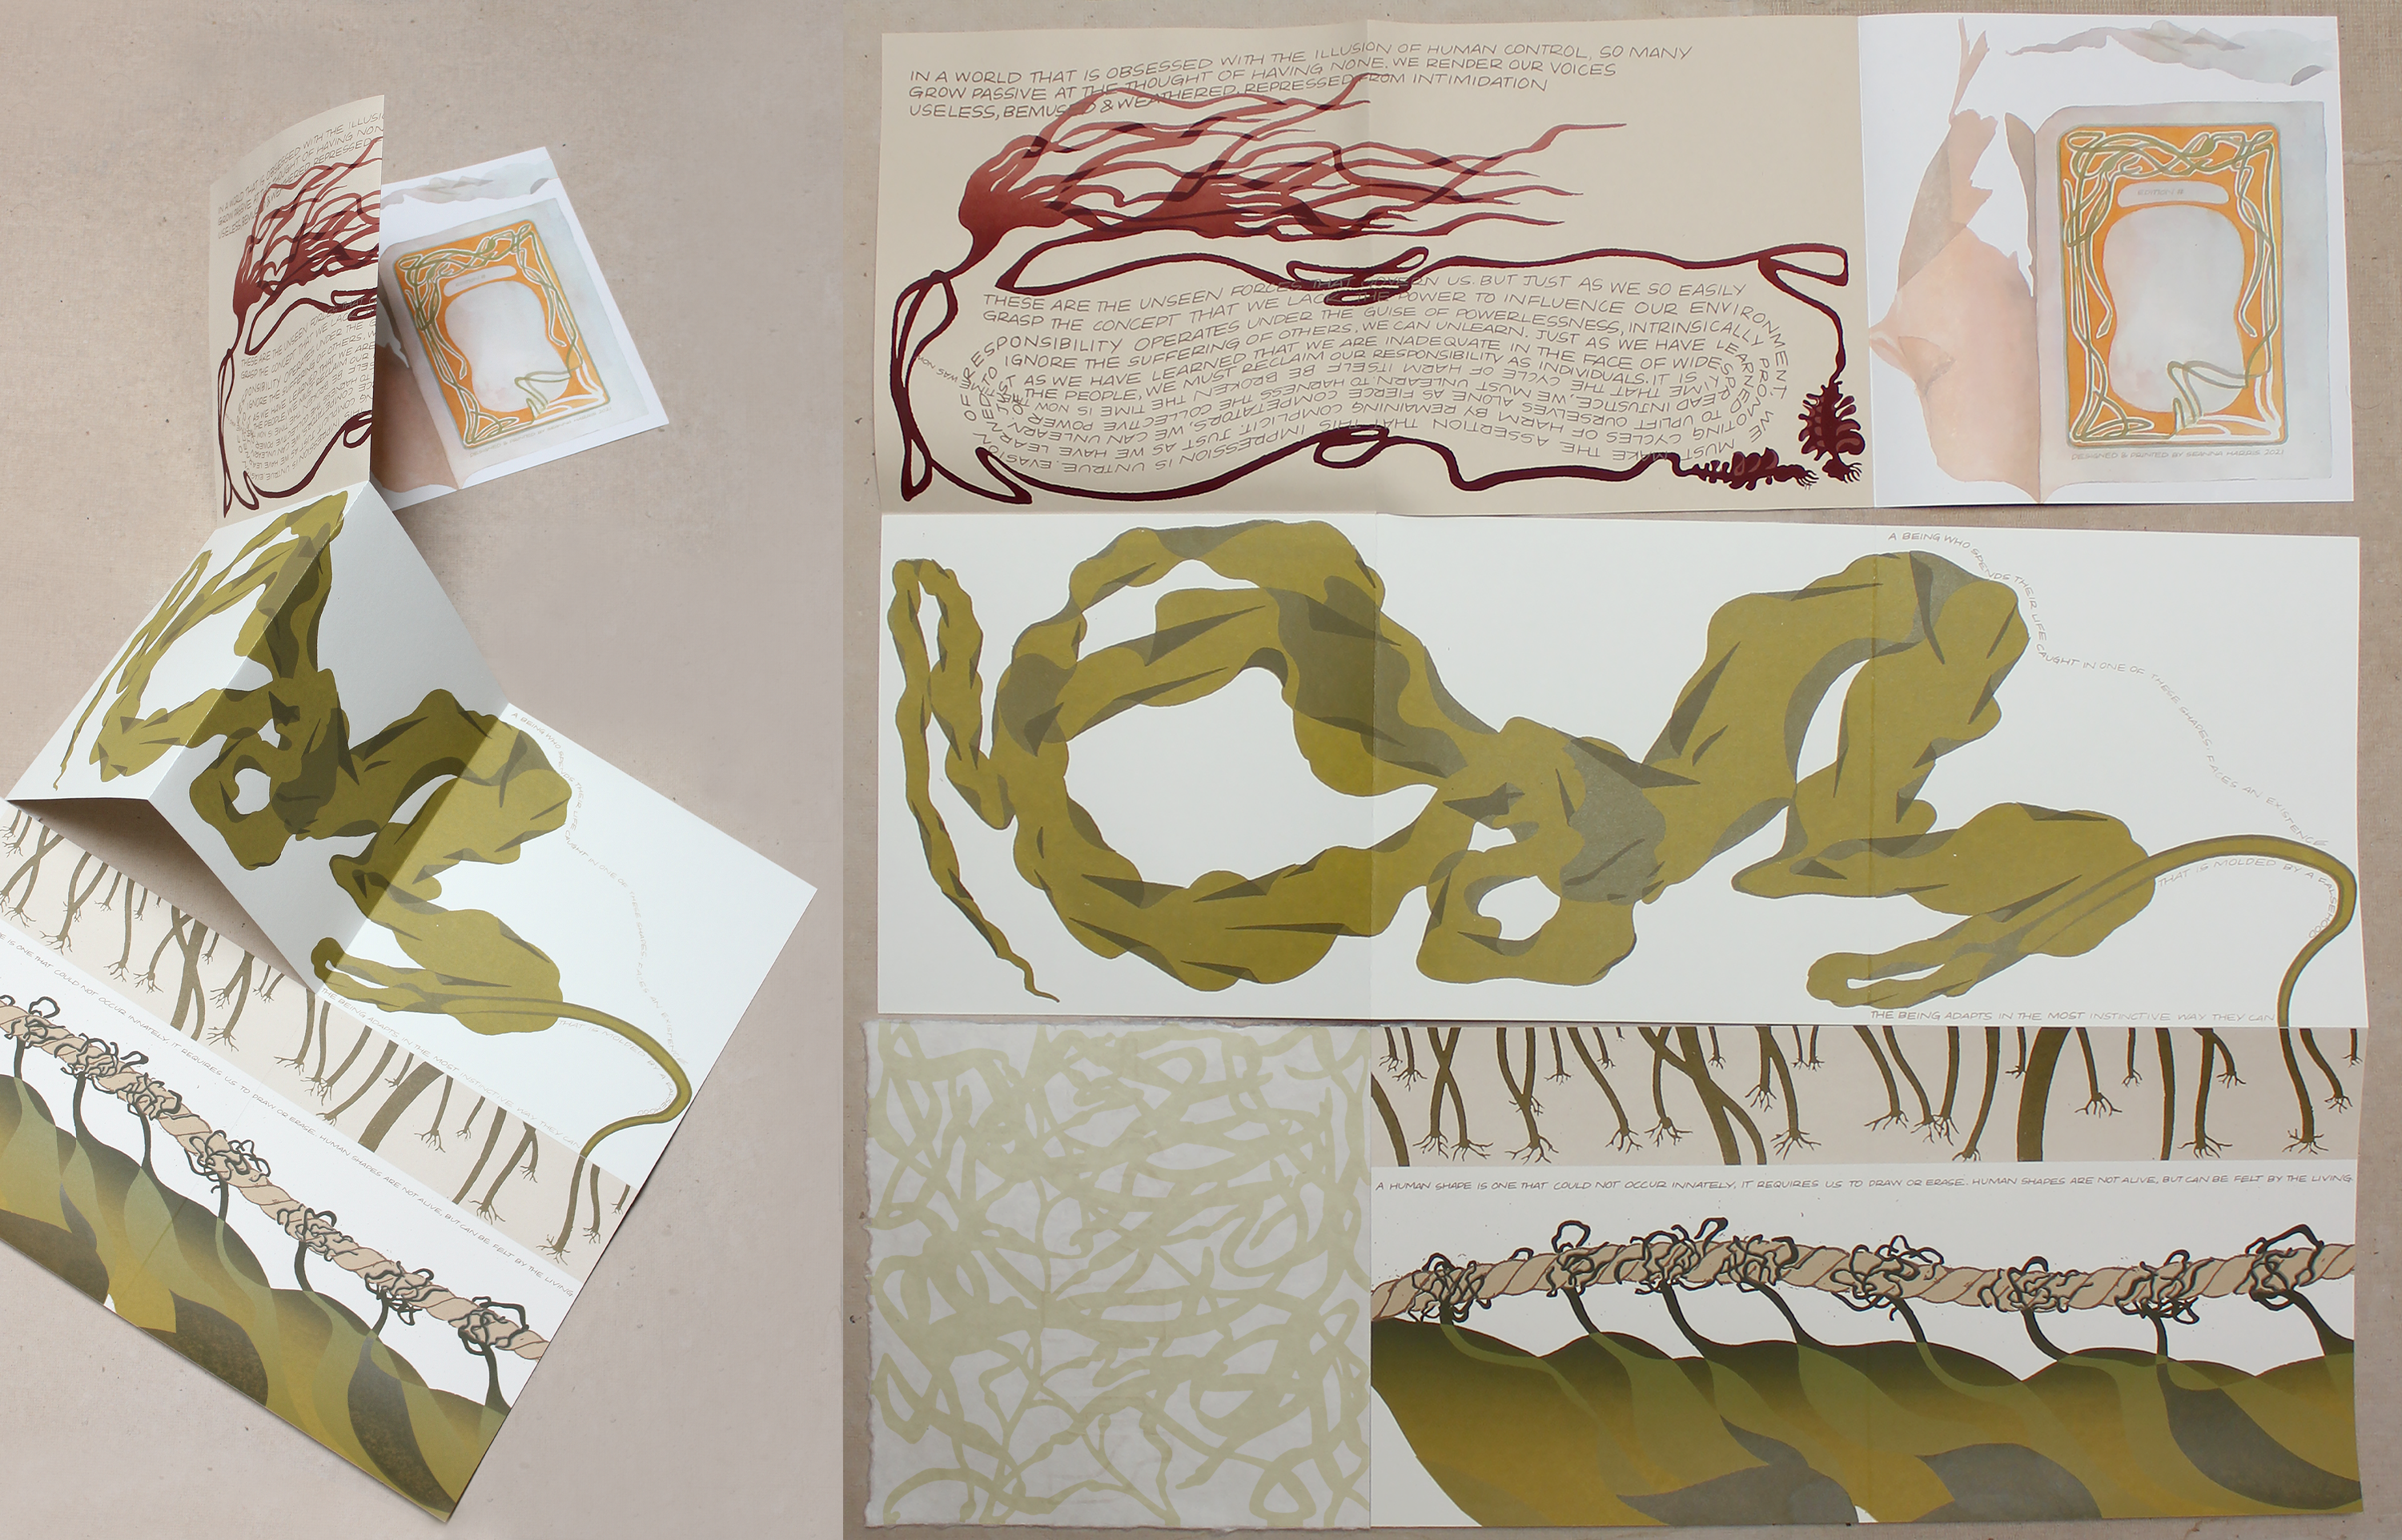 This piece is a maze style book made up of nine square pages. The layout progresses from the bottom left corner to the right and snakes upwards to form an 'S' shape. The pages depict various configurations of marine kelp, assisted with text.